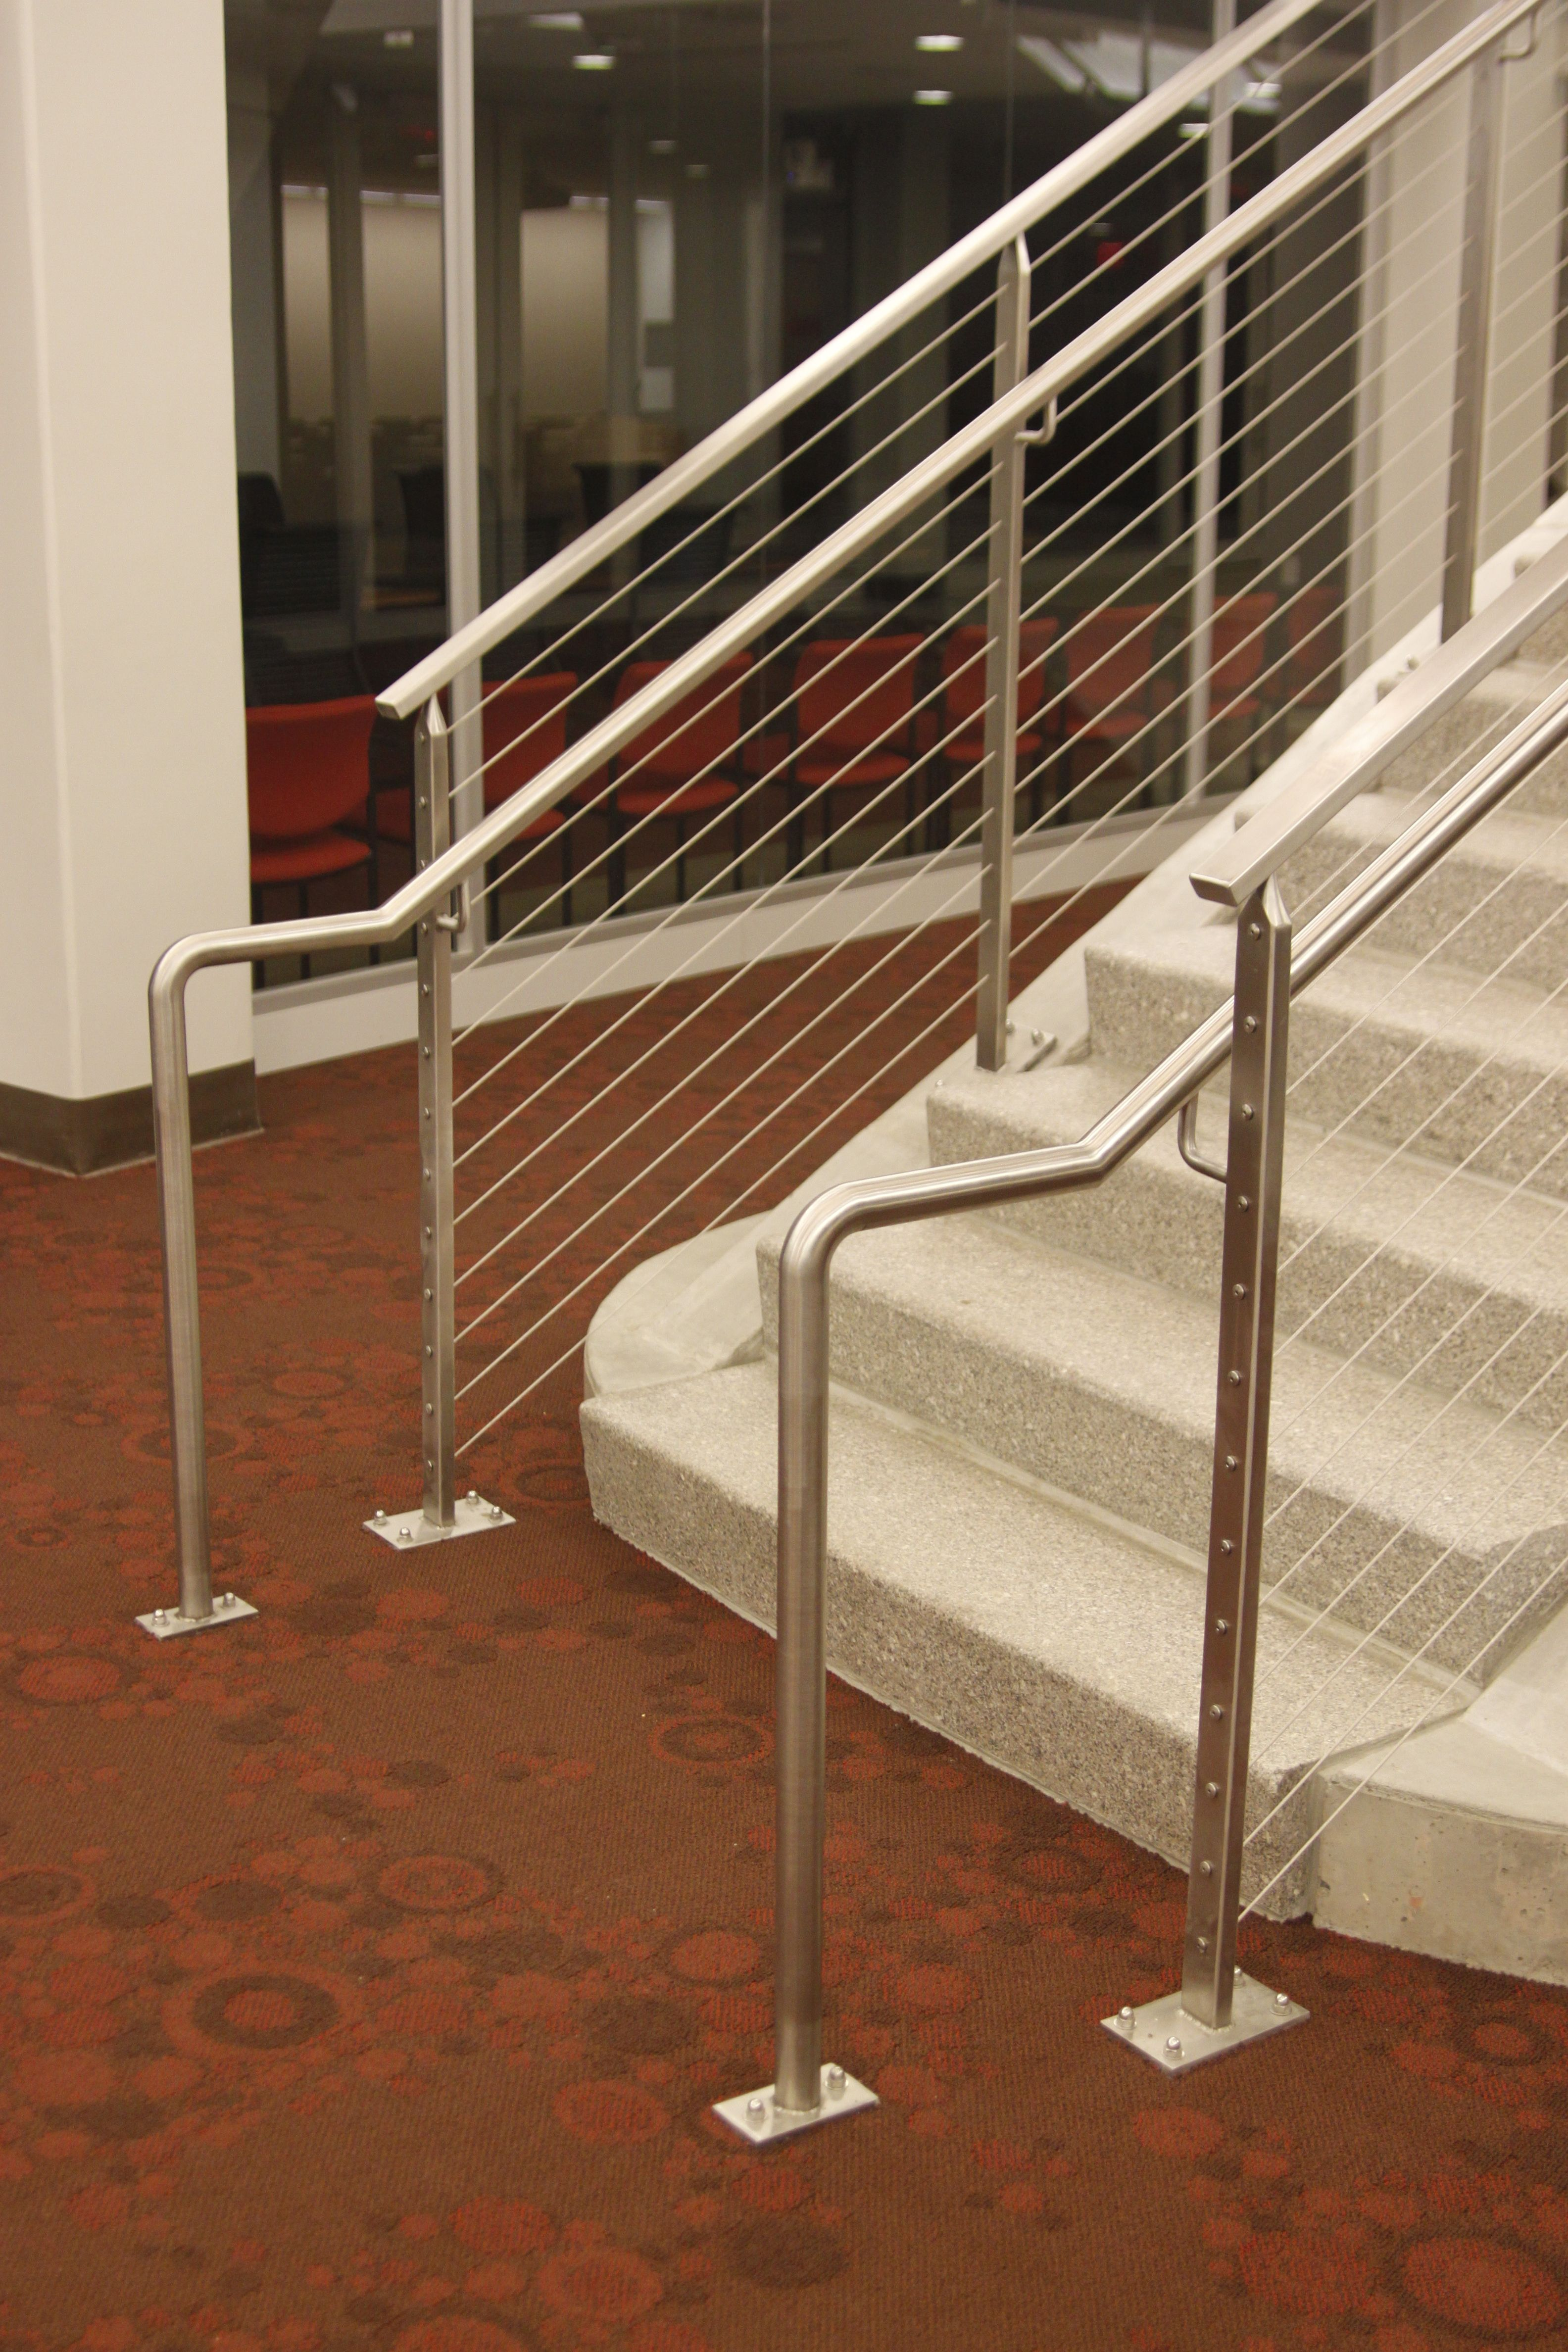 Stair railings made with rectangular stainless steel tubing posts and  stainless steel cables. These stair